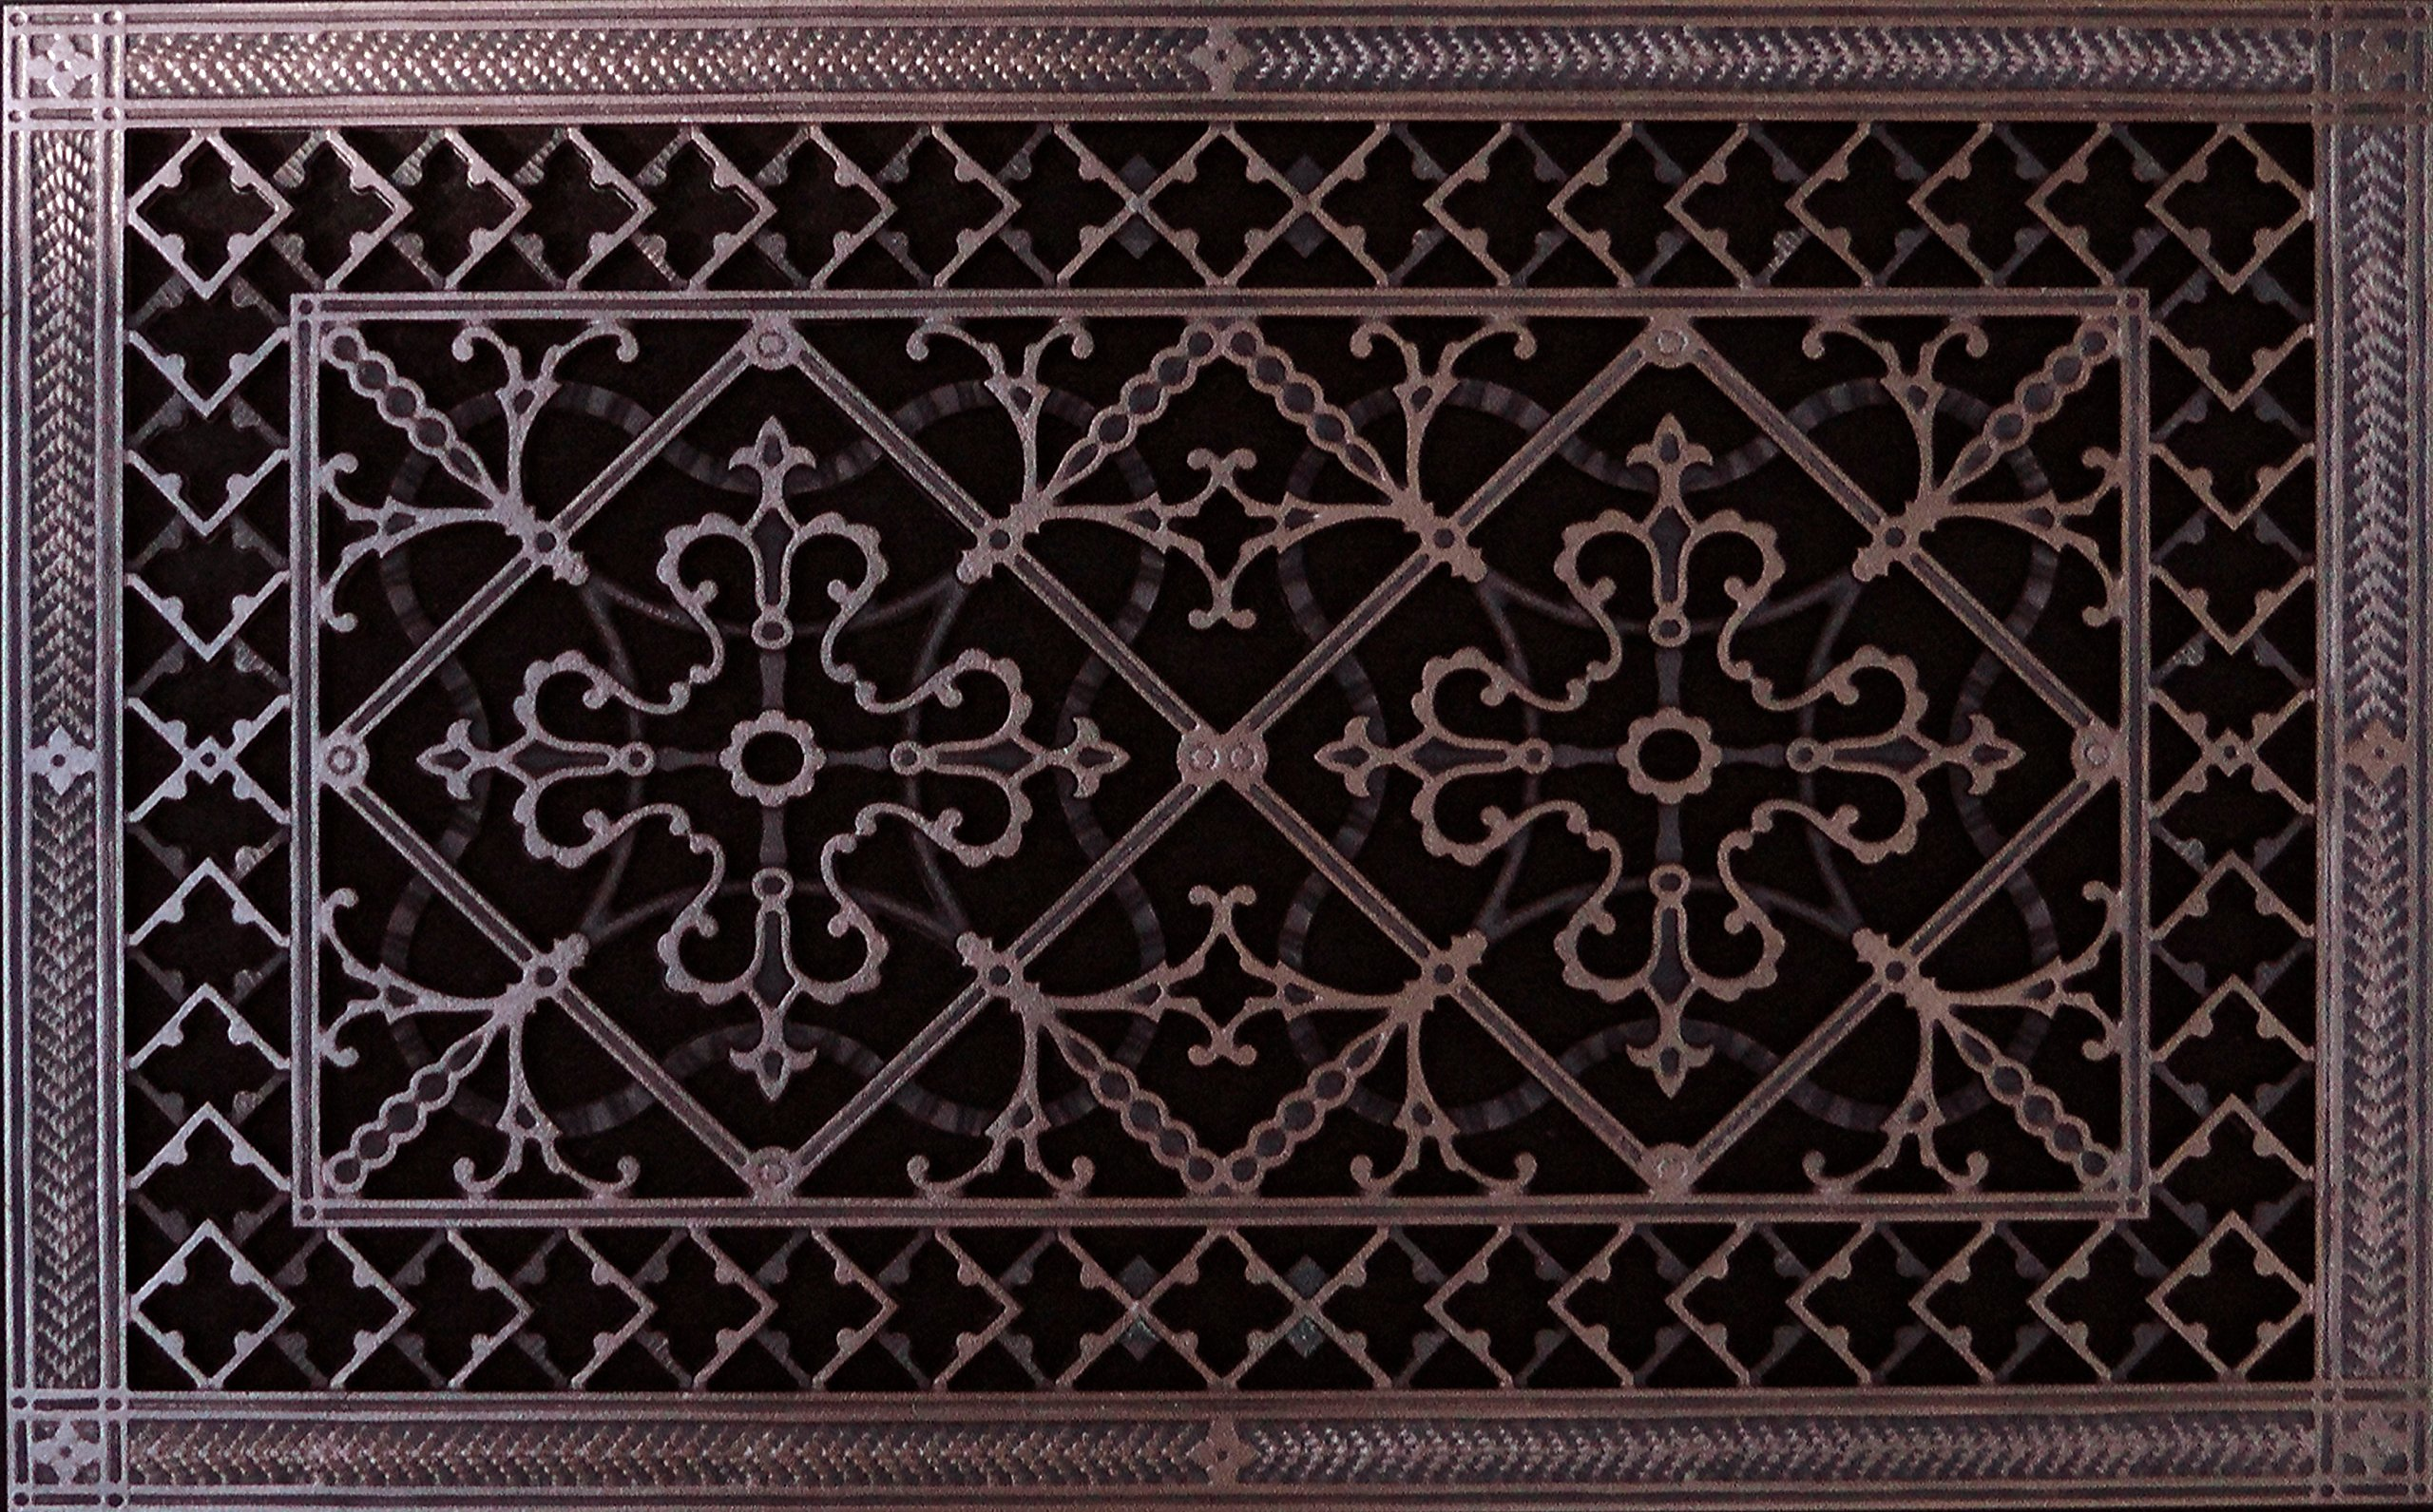 """Decorative Grille, Vent, or Return Air Register. Made of Urethane Resin to fit over a 14''x24'' duct or opening. Total size of vent is 16""""x26''x3/8'', for wall and ceiling grilles (not for floor use). by Beaux-Artes, Ltd."""